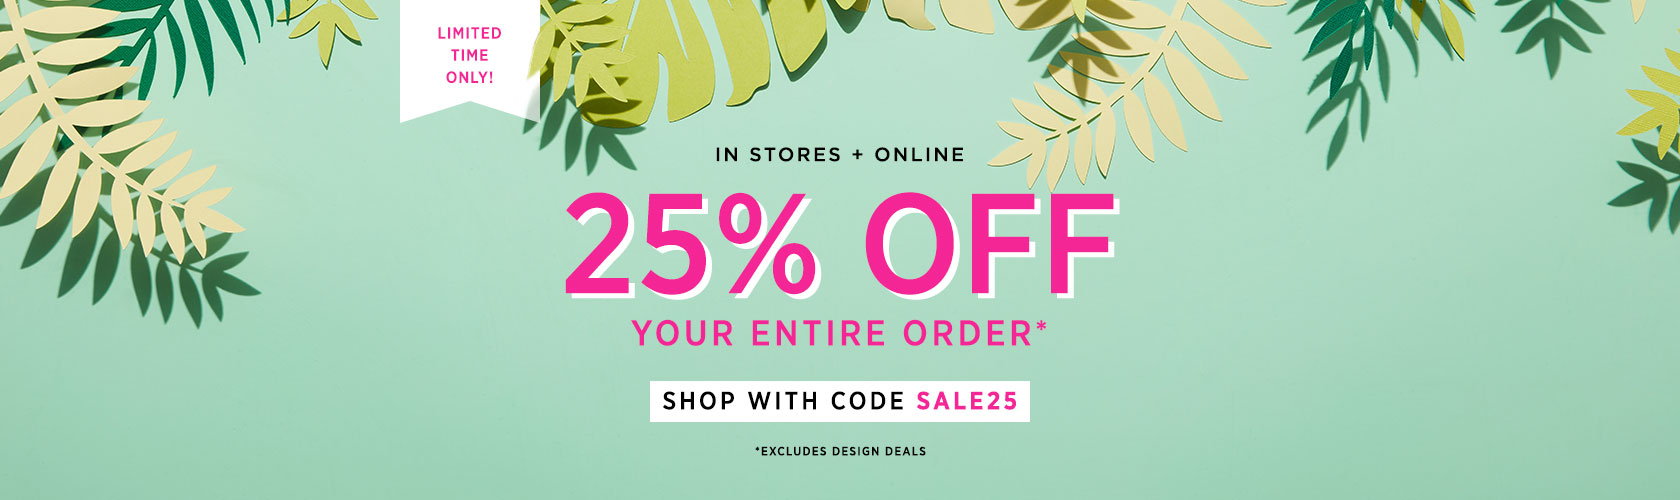 25% Off Your Entire Order With Code SALE25